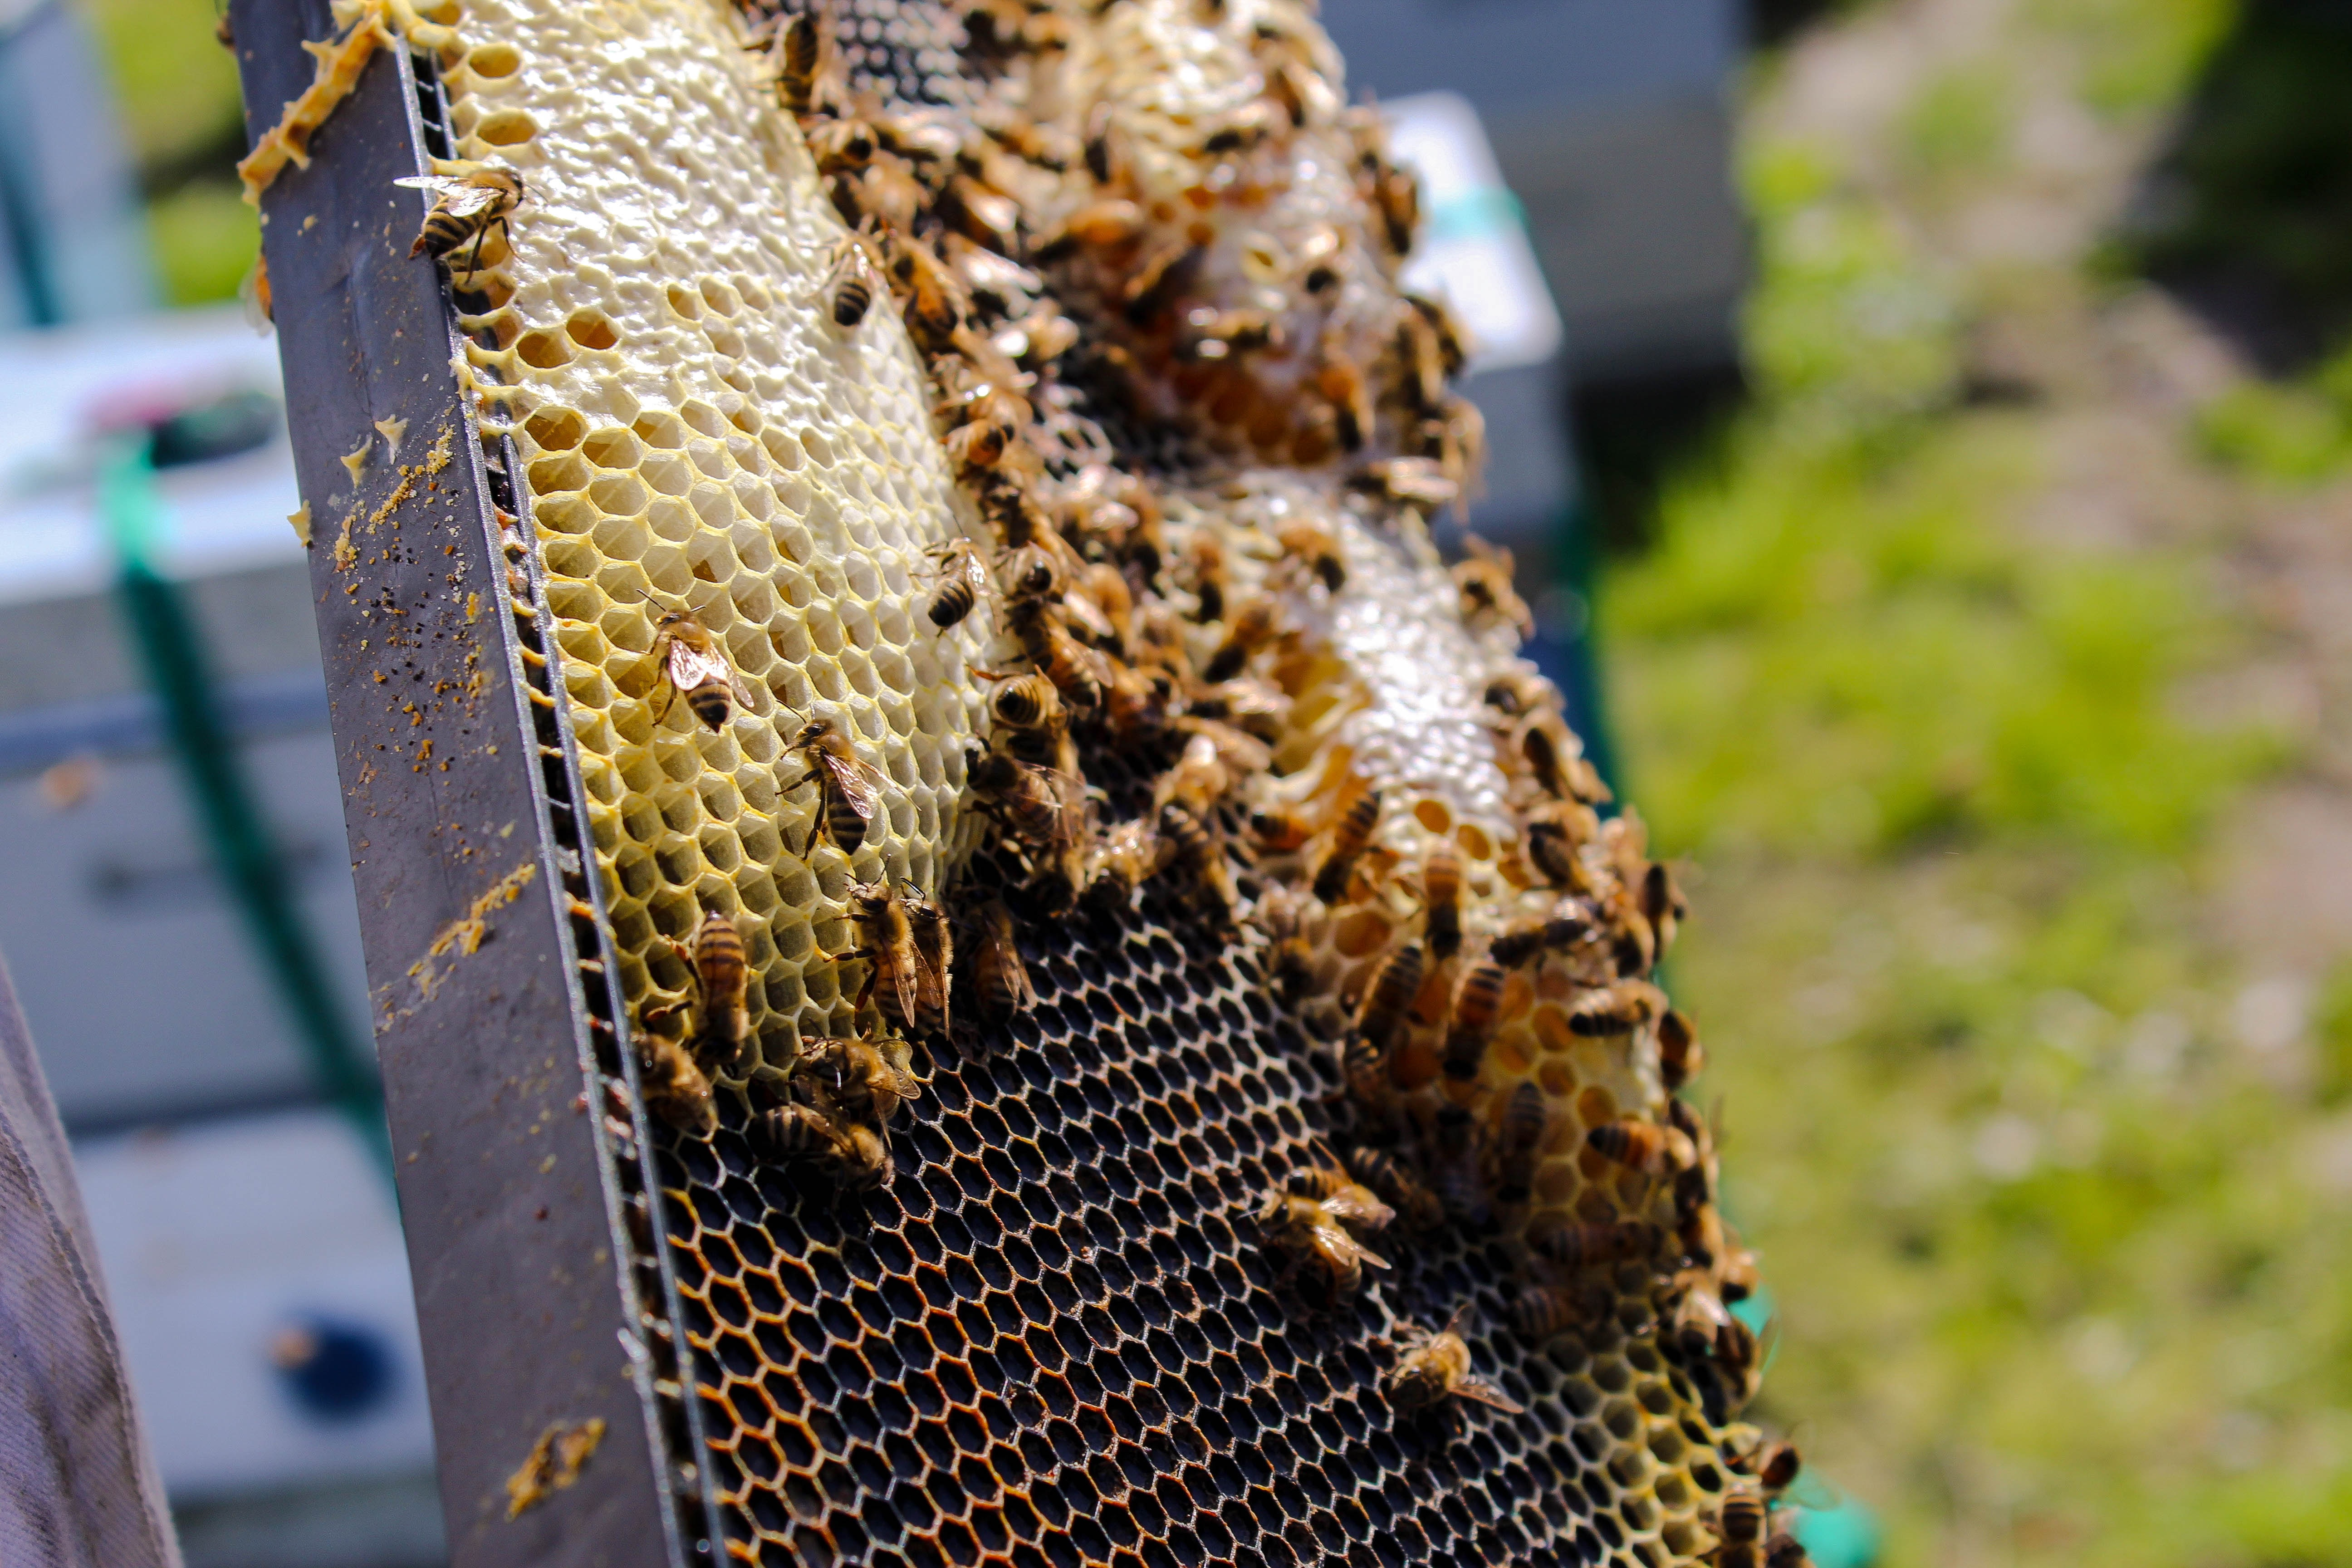 Discussion on this topic: How to Attract Mason Bees, how-to-attract-mason-bees/